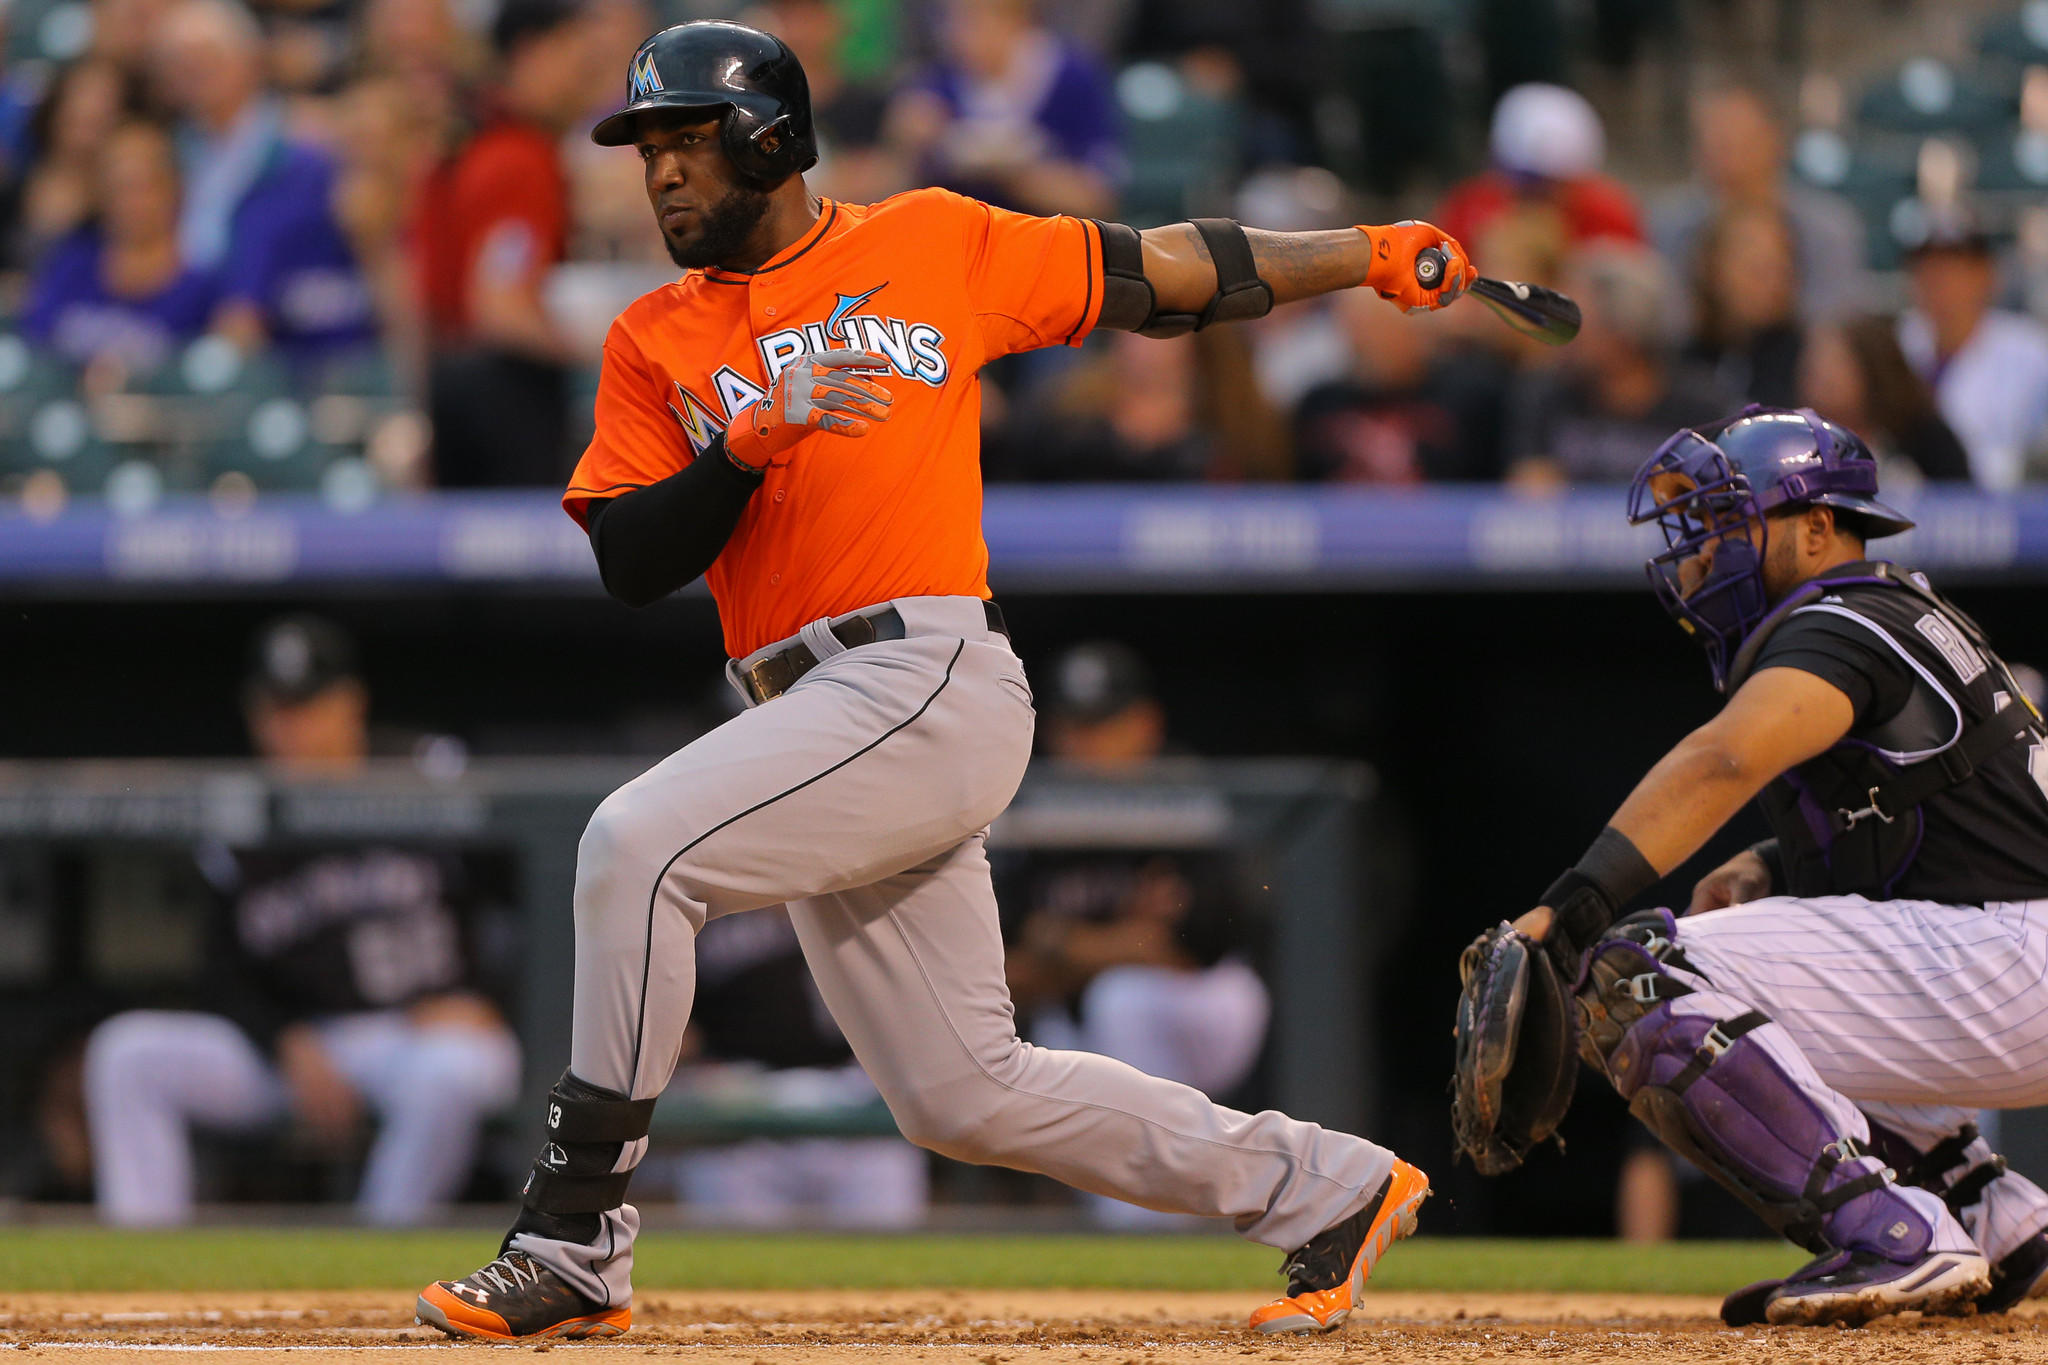 Marcell Ozuna #13 of the Miami Marlins watches his double during the second inning against the Colorado Rockies at Coors Field on August 22, 2014 in Denver, Colorado. Ozuna would go on to score in the inning.